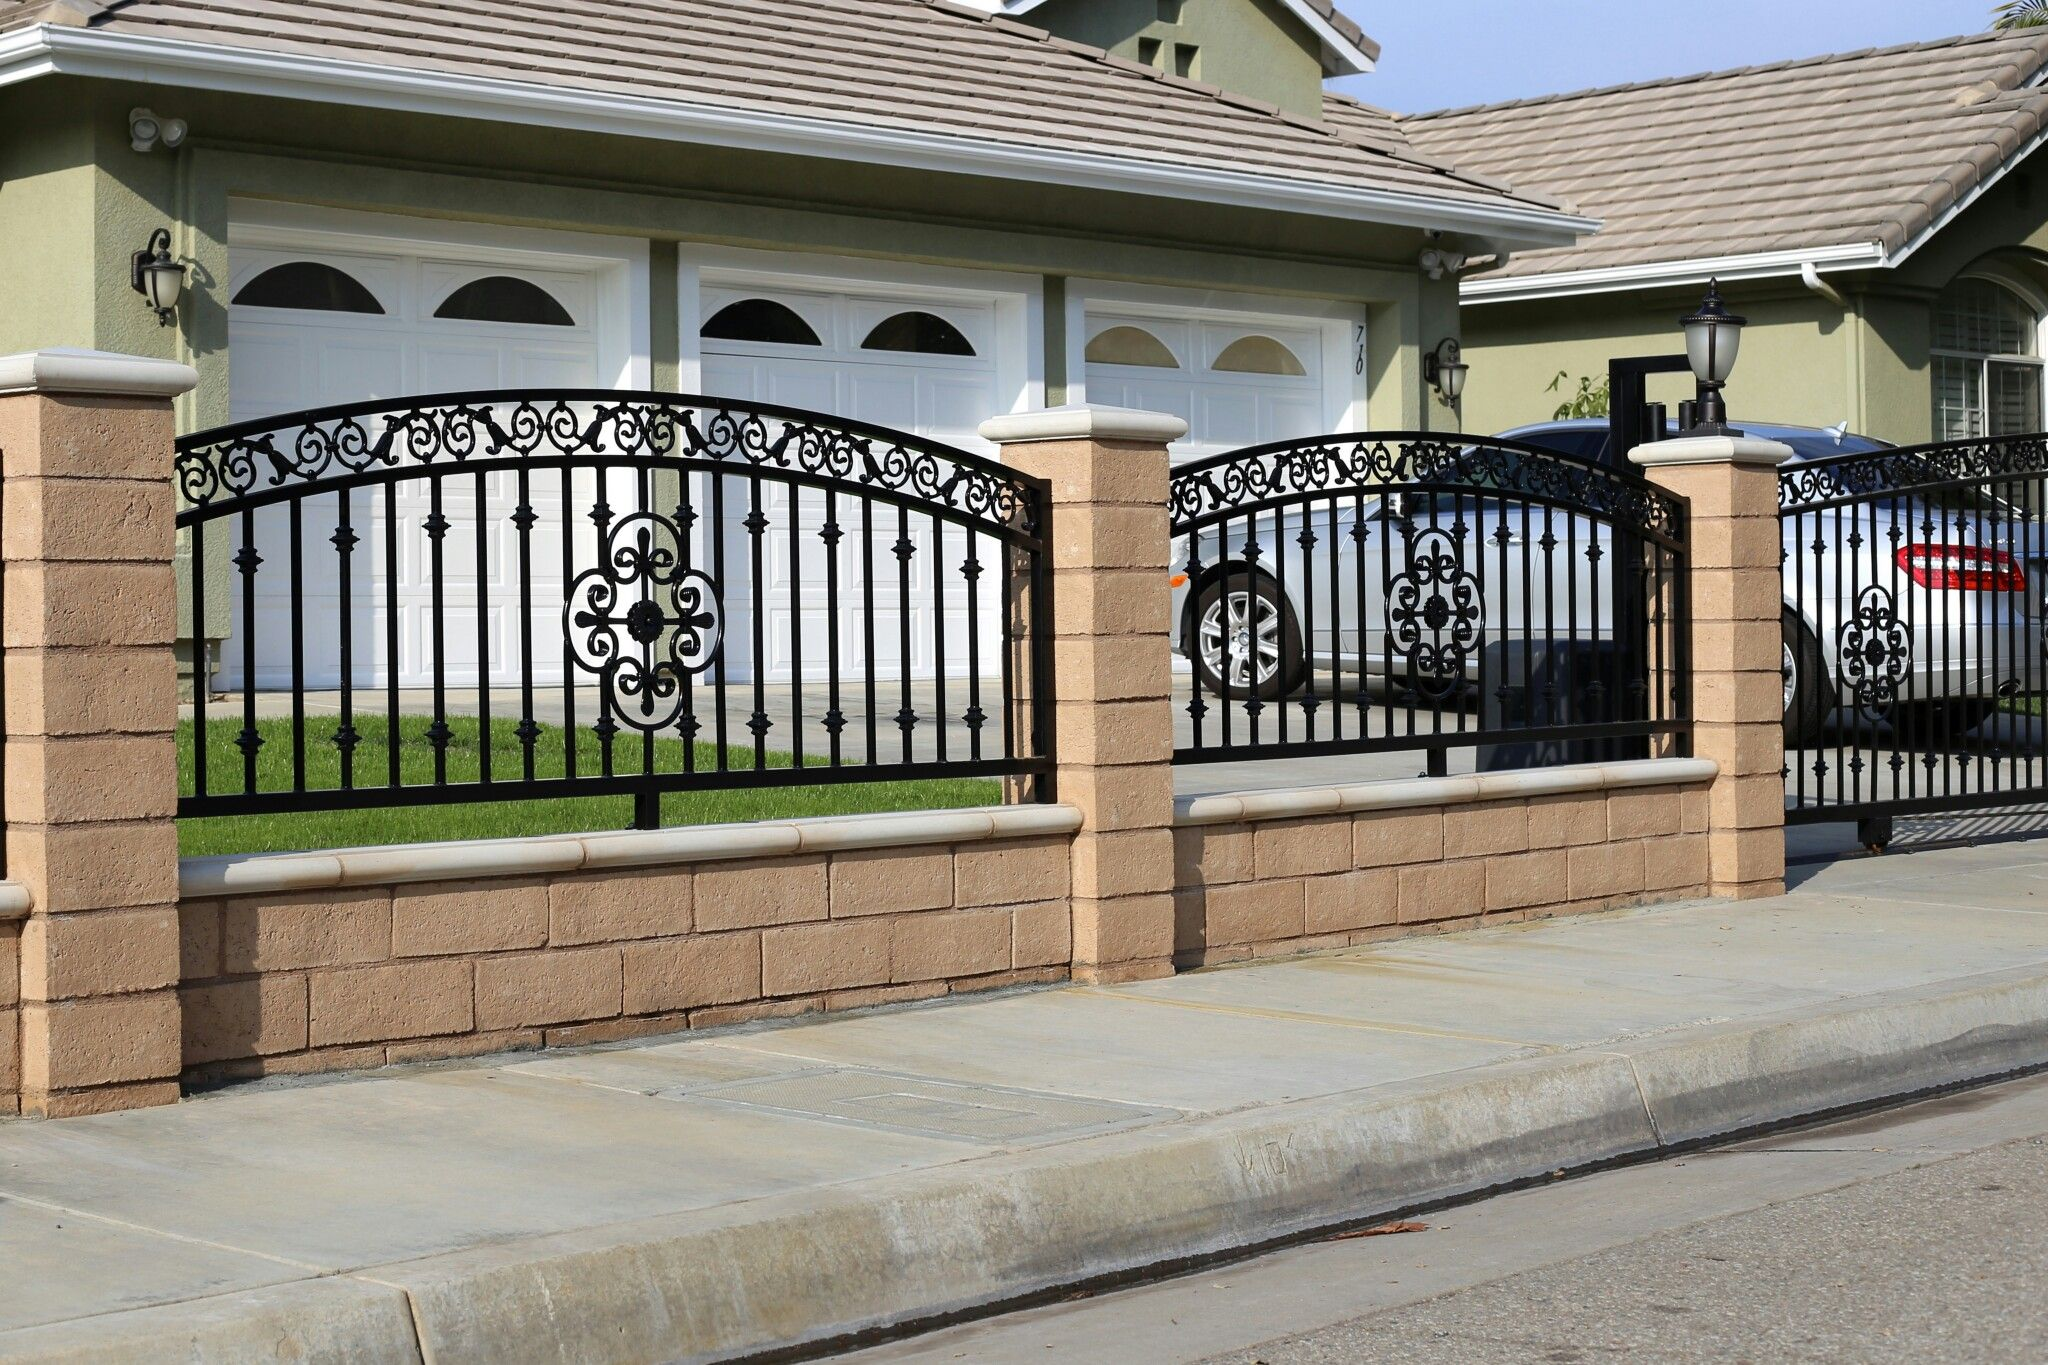 Pin By Andrea Galarza On Home Fencing Gates Wrought Iron Styles Like In 2020 Fence Design Fence Gate Design Iron Fence